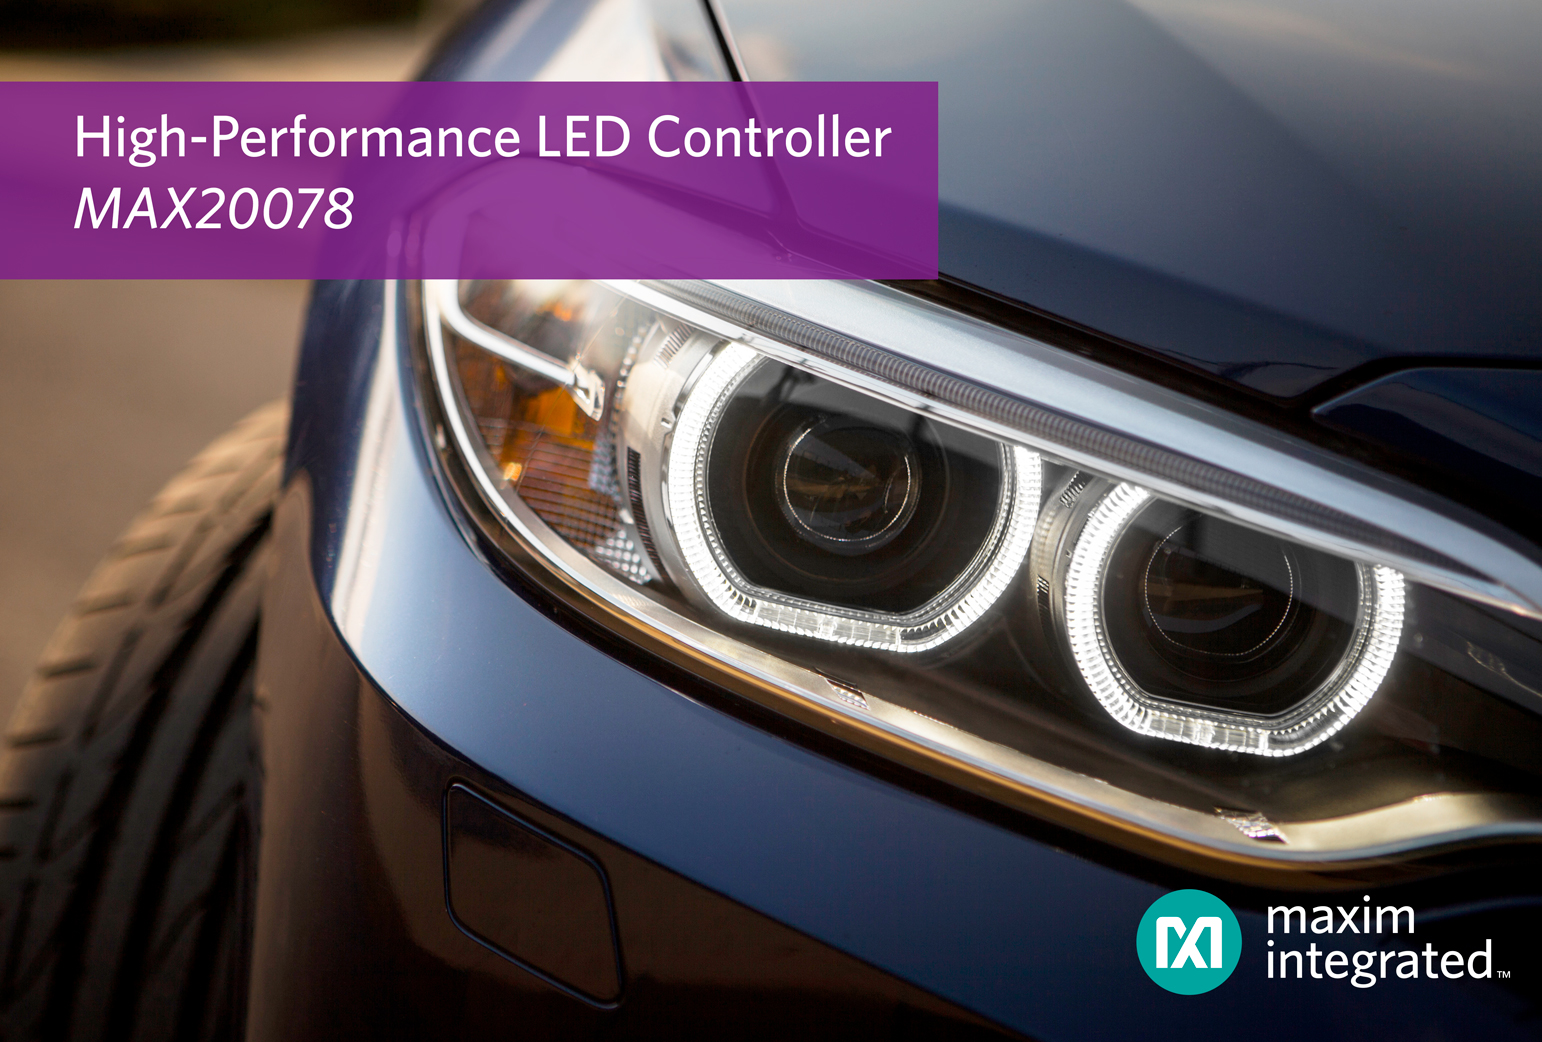 LED Controller Eliminates Trade-Off Between Fast Response Time and Low EMI for Exterior Lighting